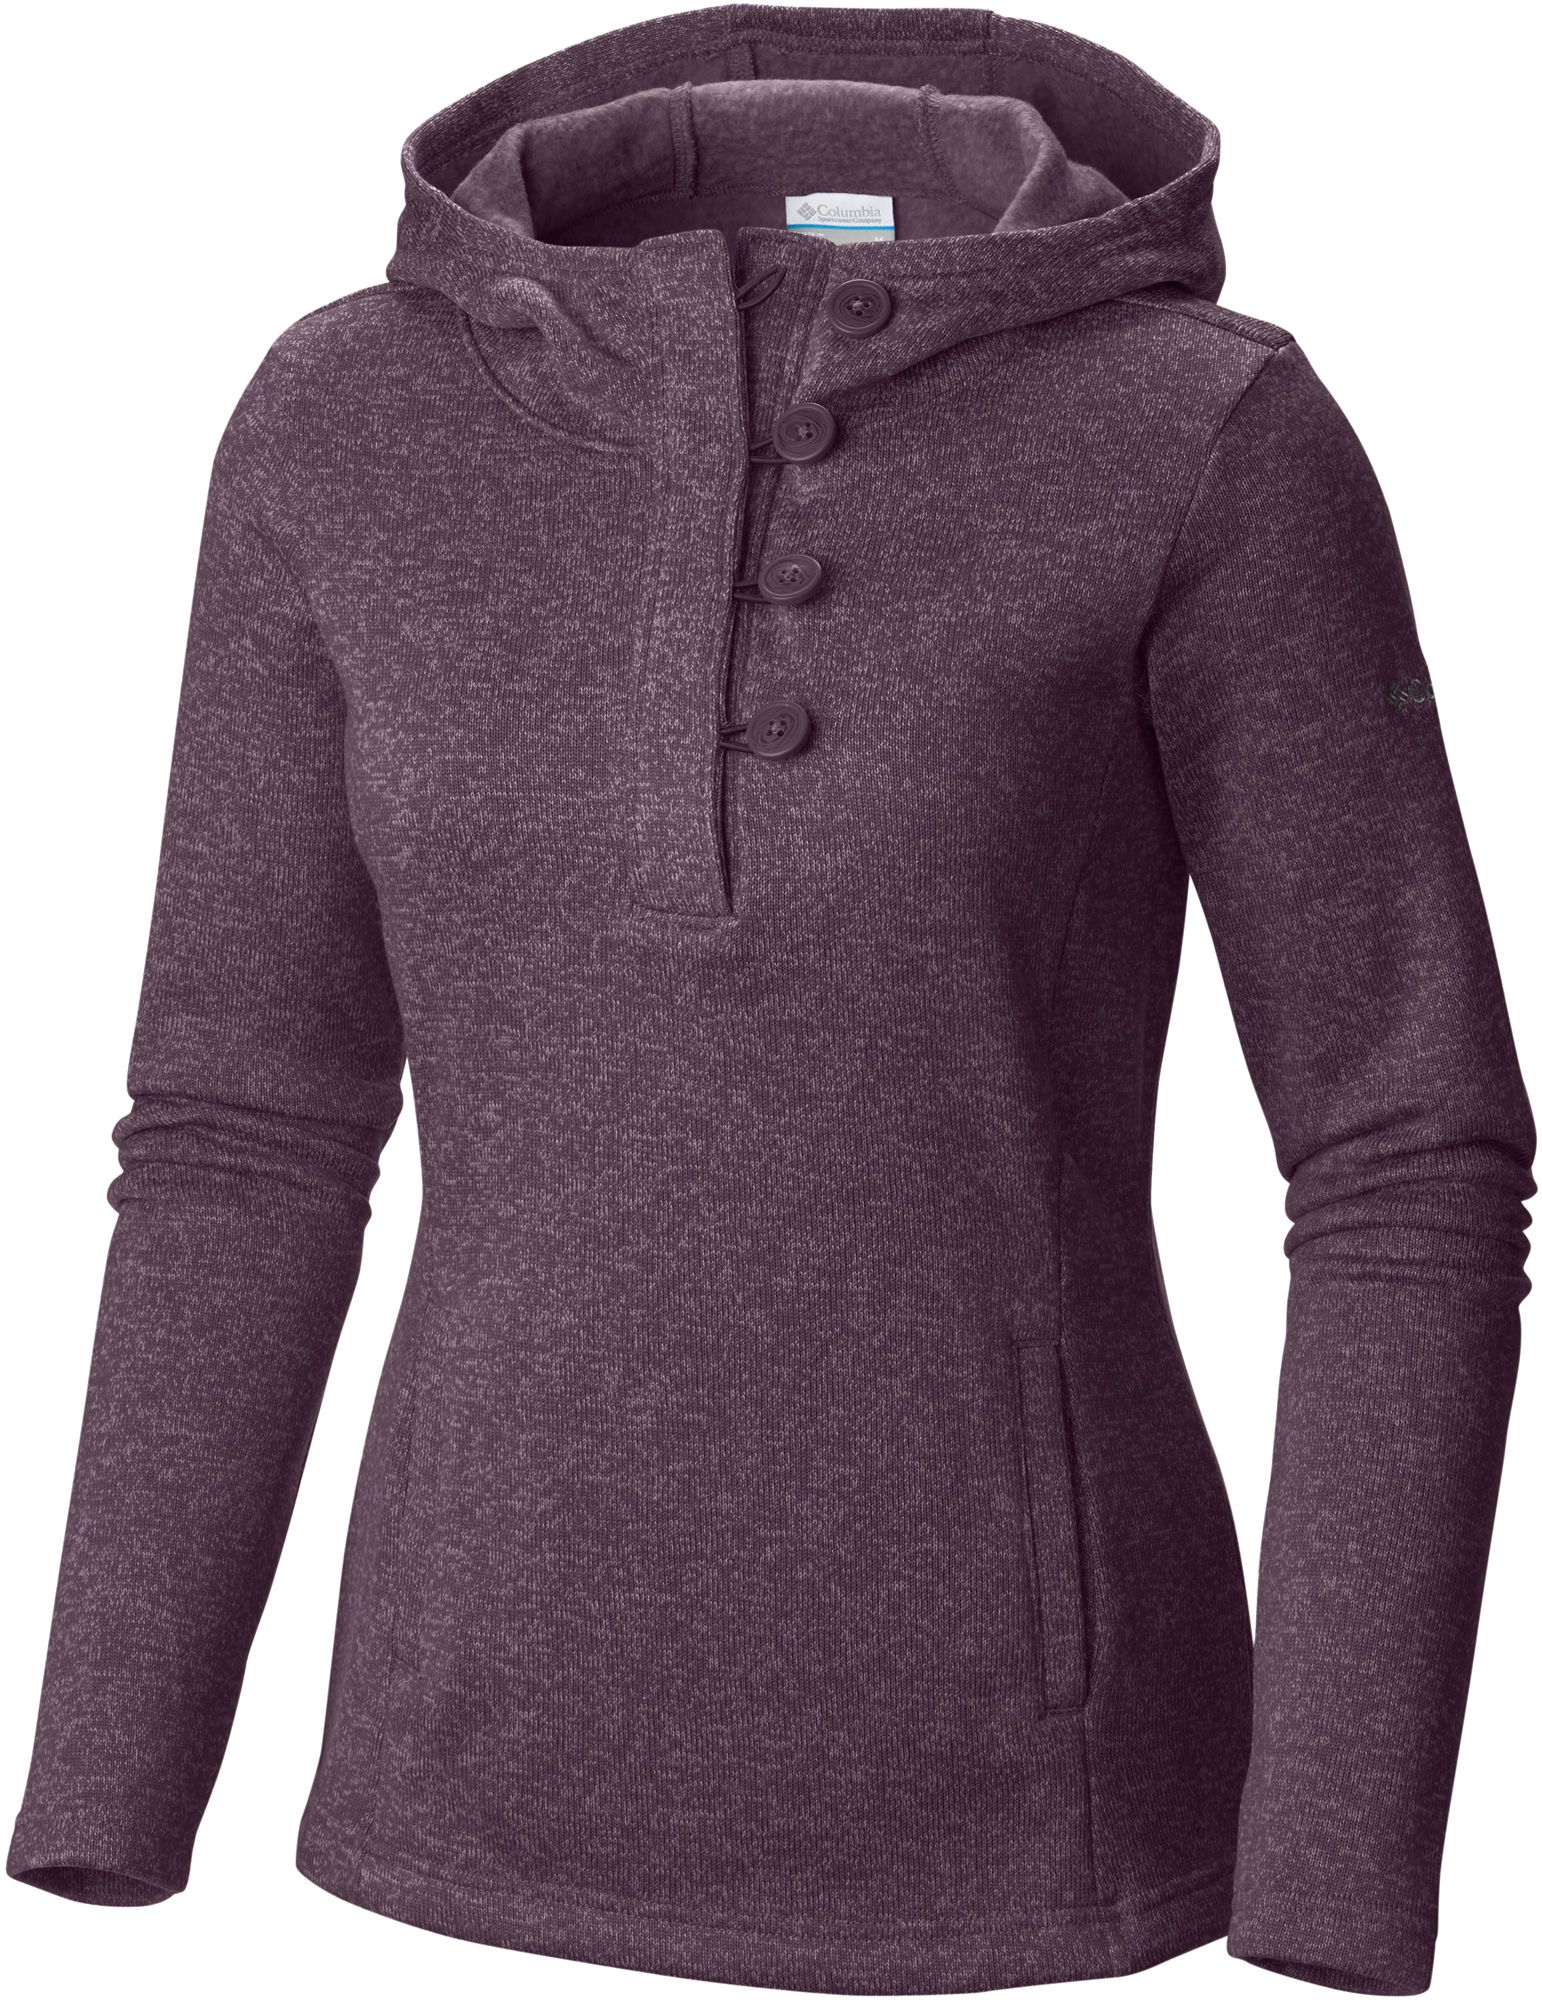 womens hoodies product image · columbia womenu0027s darling days pullover hoodie ZONOWXN